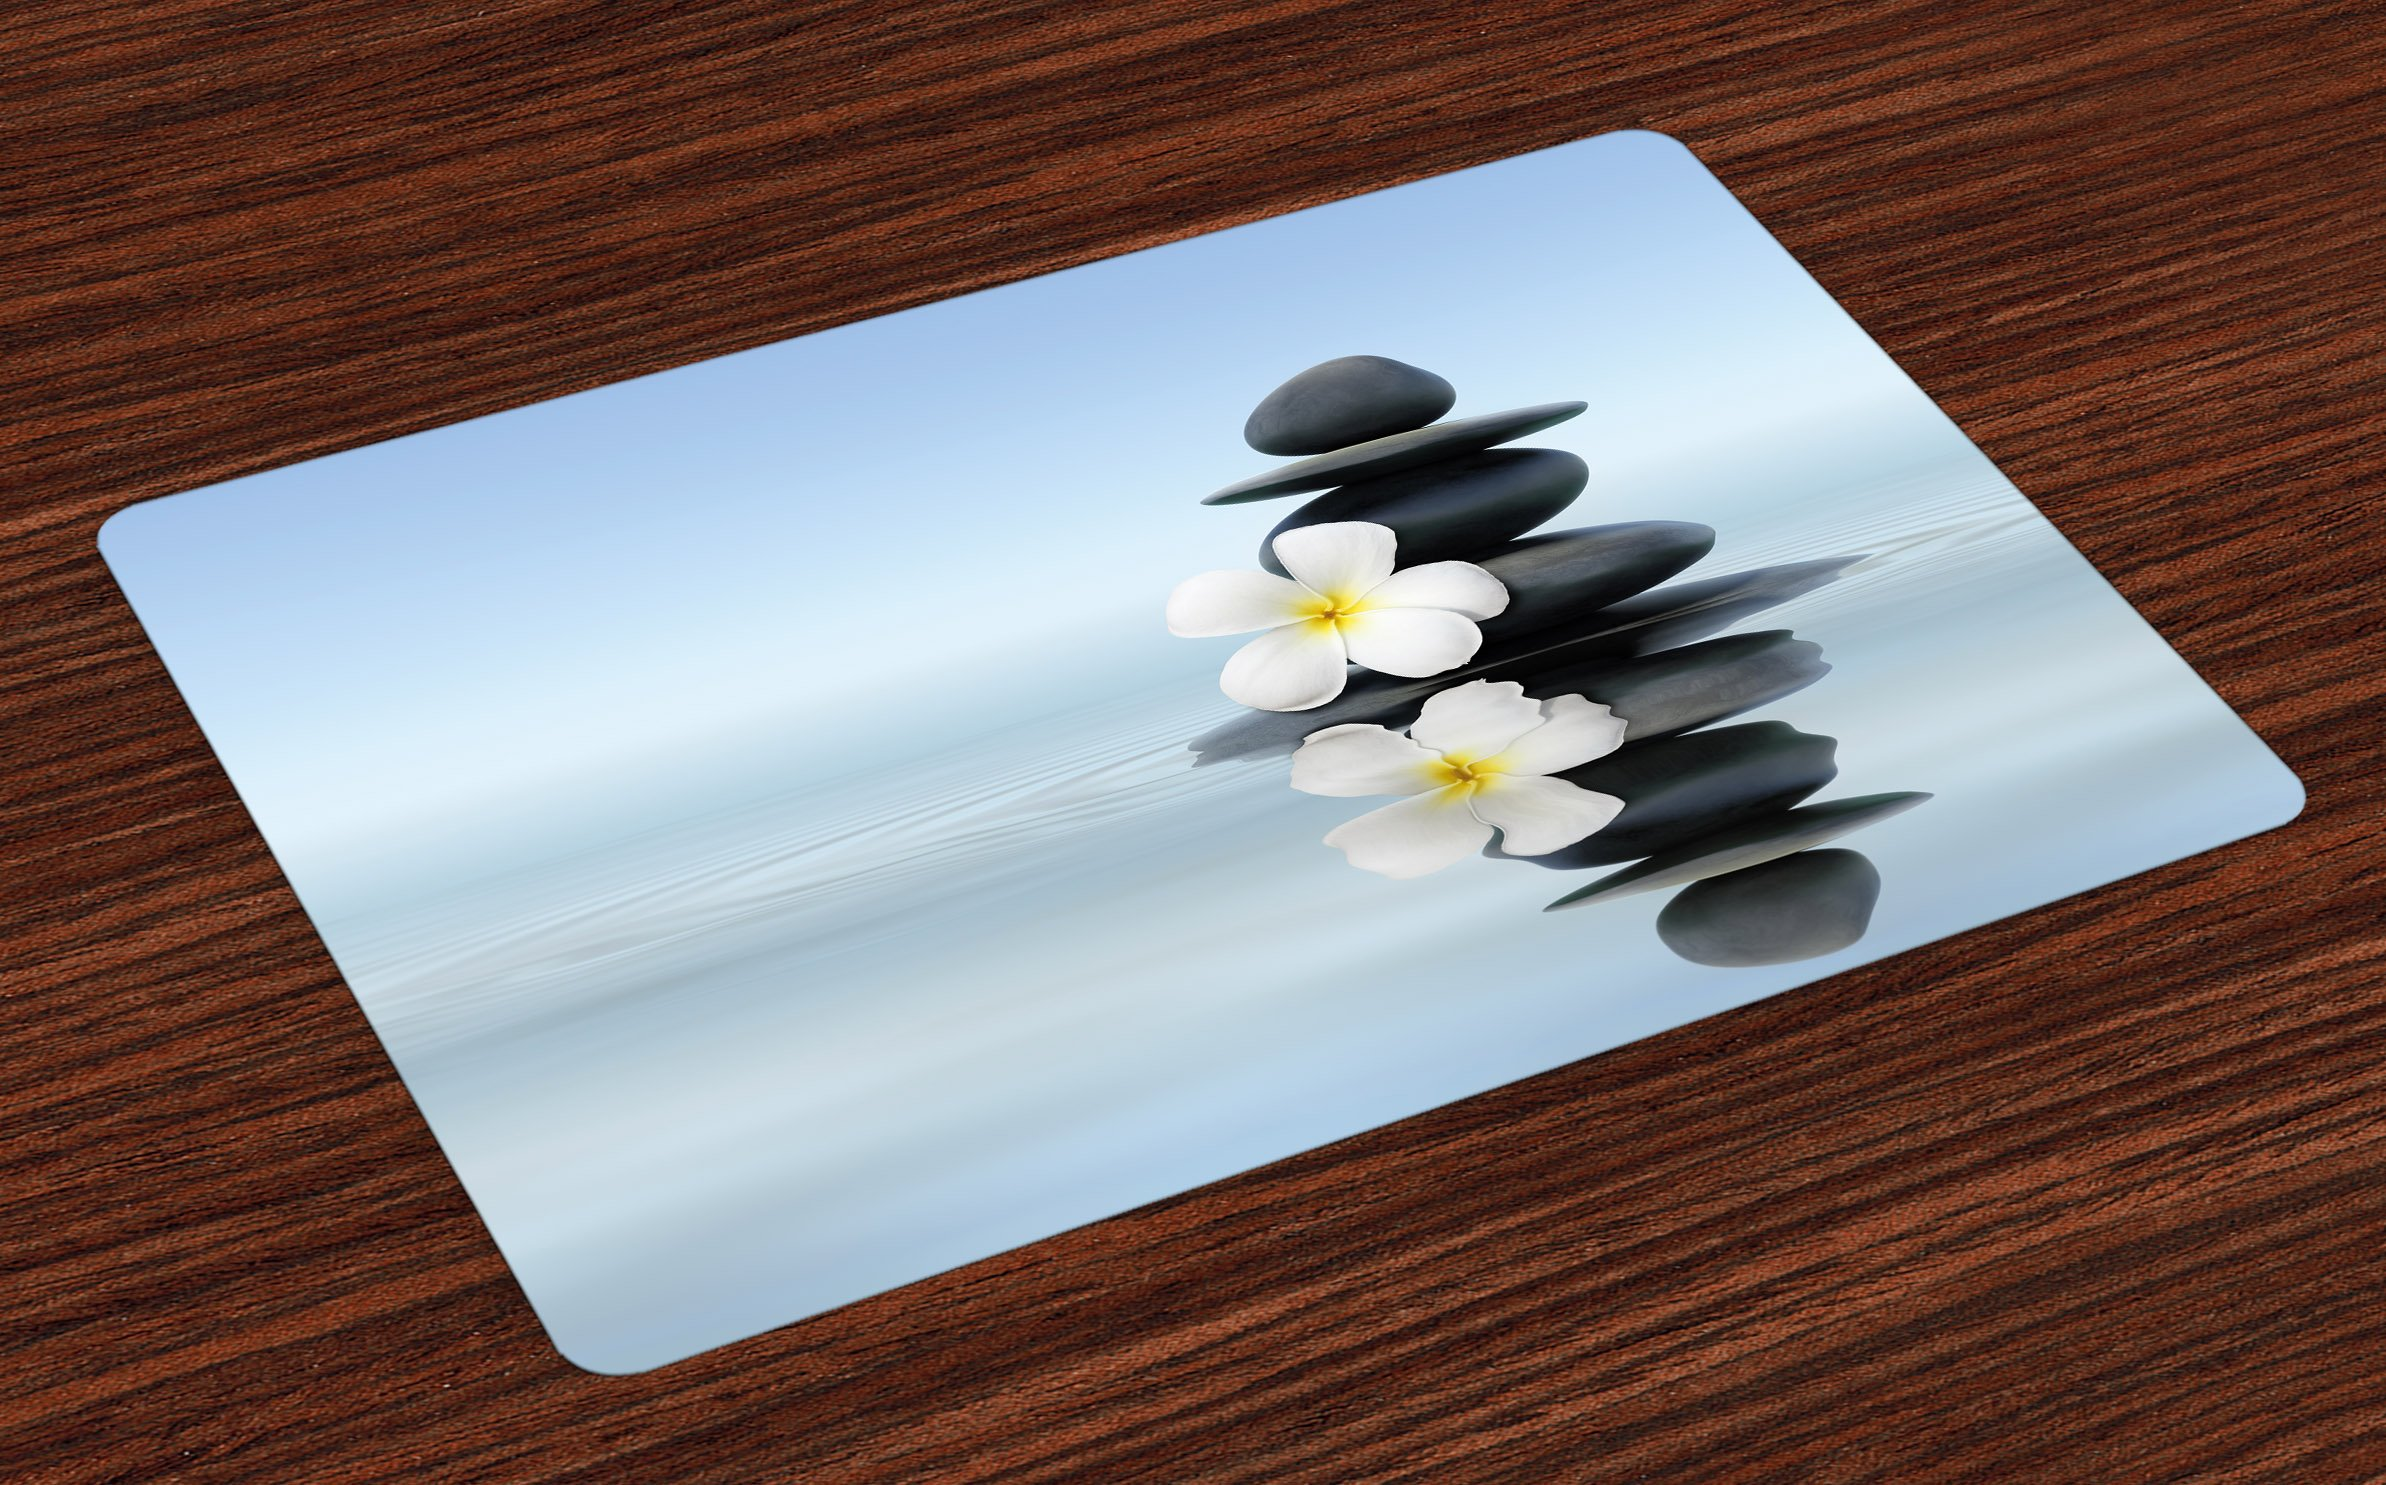 Ambesonne Spa Place Mats Set of 4, Hot Zen Massage Stones with Asian Frangipani Plumera Reflection on The Waters, Washable Fabric Placemats for Dining Room Kitchen Table Decor, Black and White